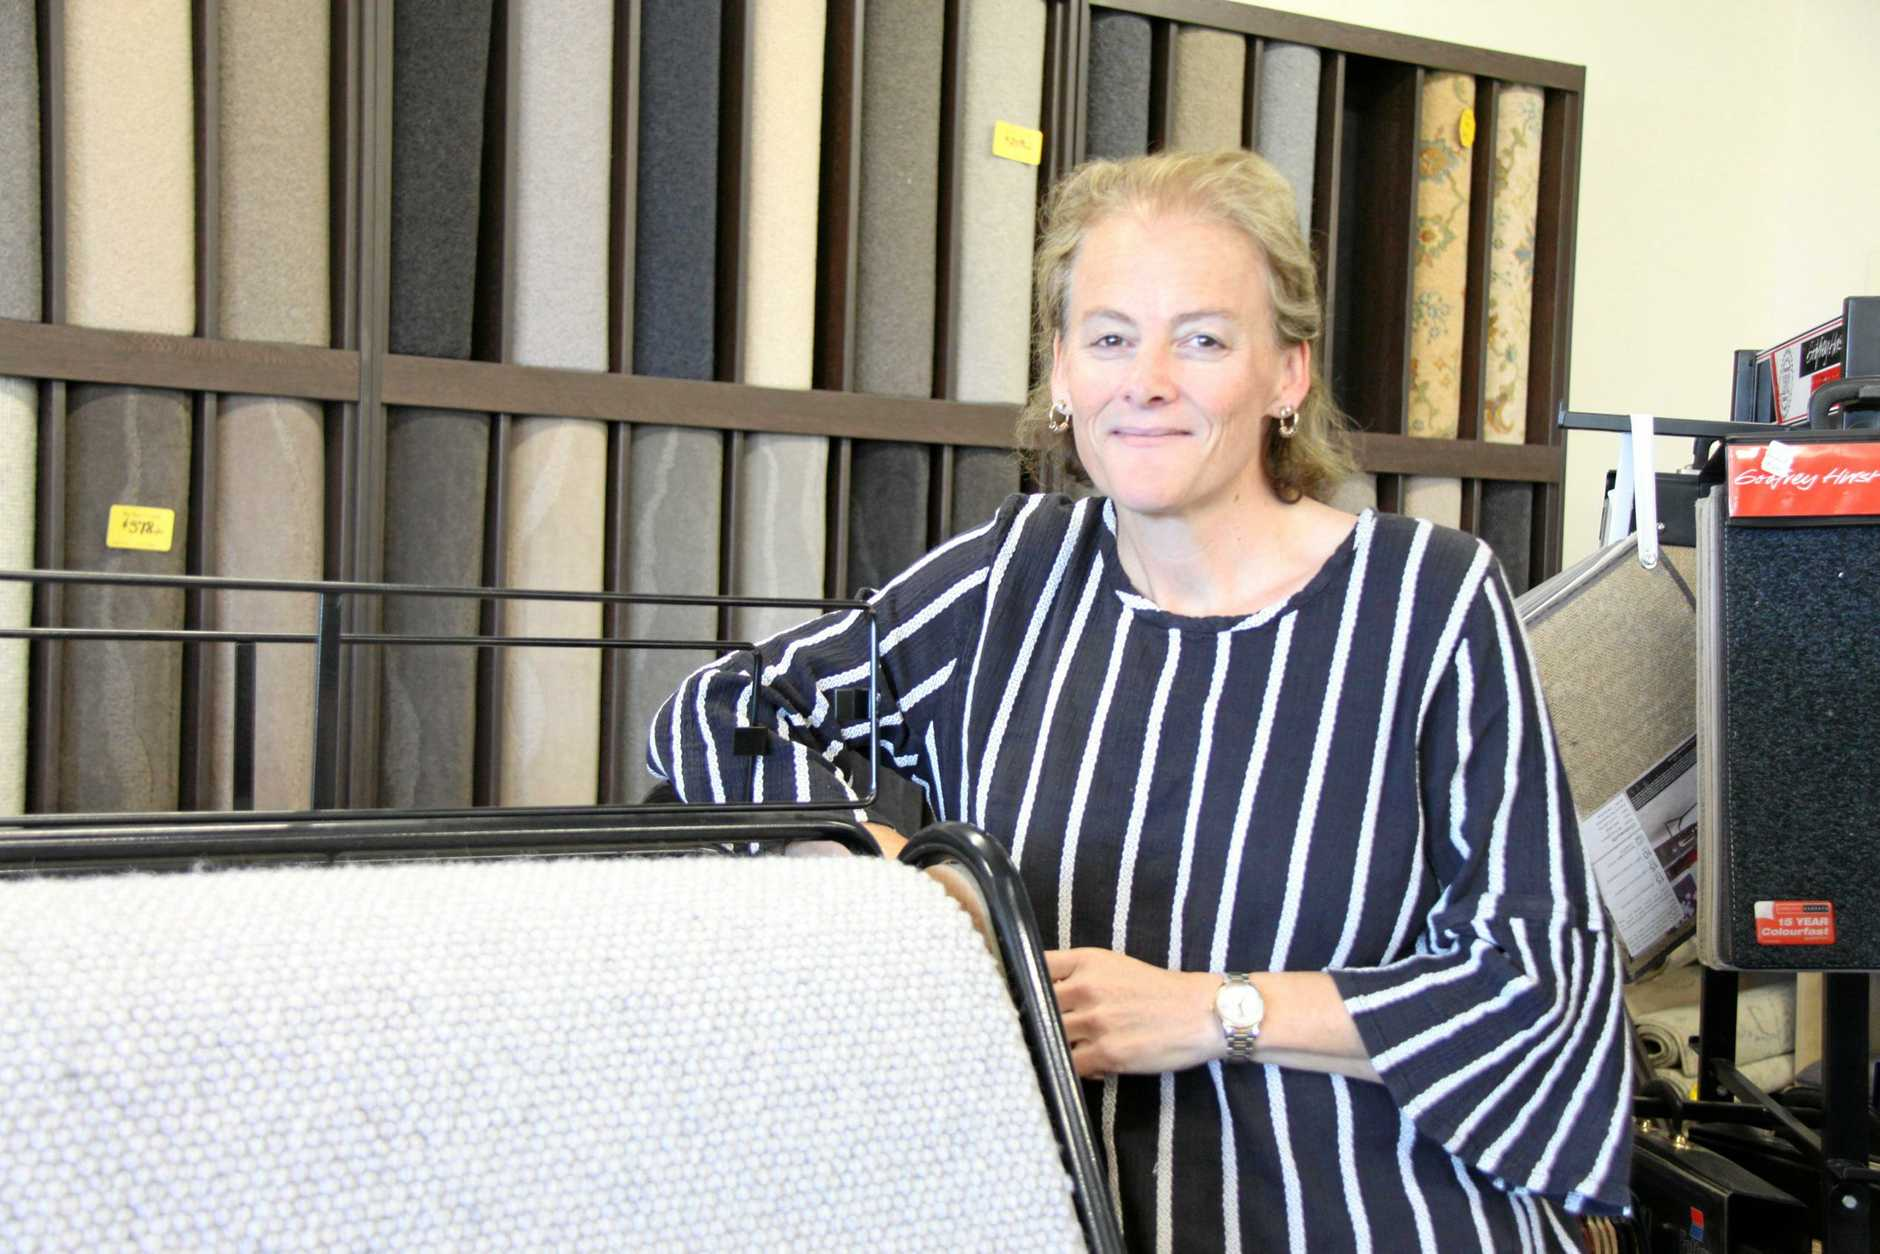 LISMORE BUSINESS MOVE: Ray Towers Carpets manager, Letitia Towers said the family business will consolidate their Lismore business at the Mullumbimby premises from the end of June.